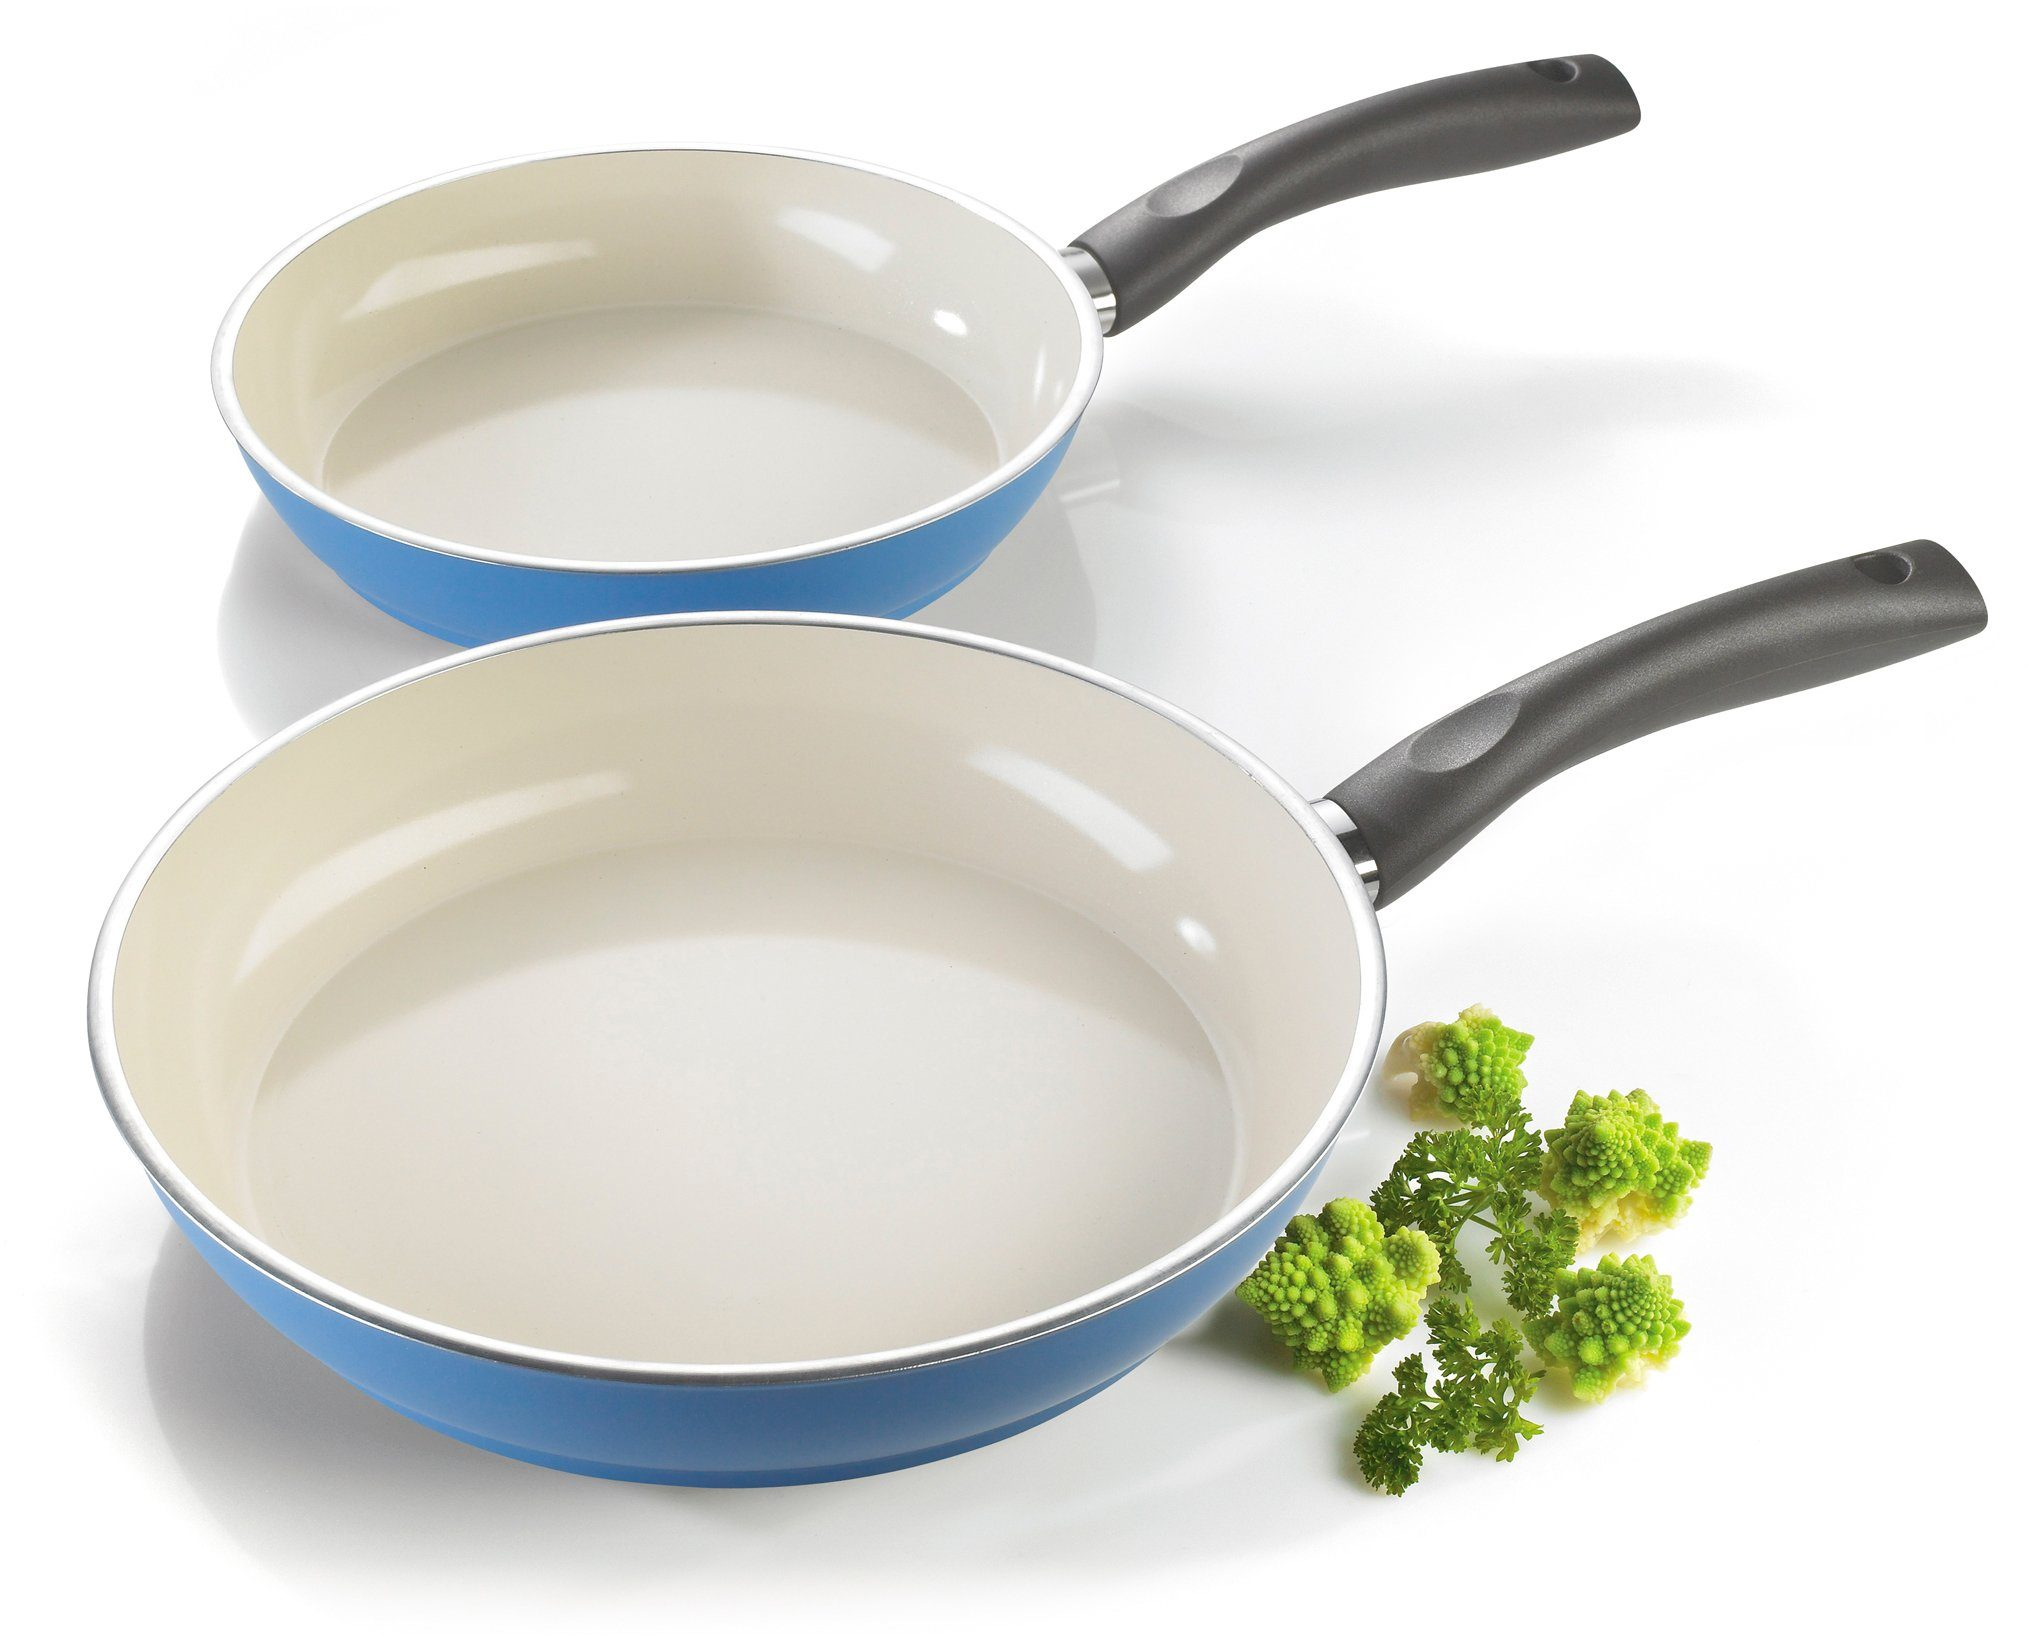 Style'n Cook Bratpfannen-Set, Aluminium, Induktion, »CERAMIC DUO CREAM«